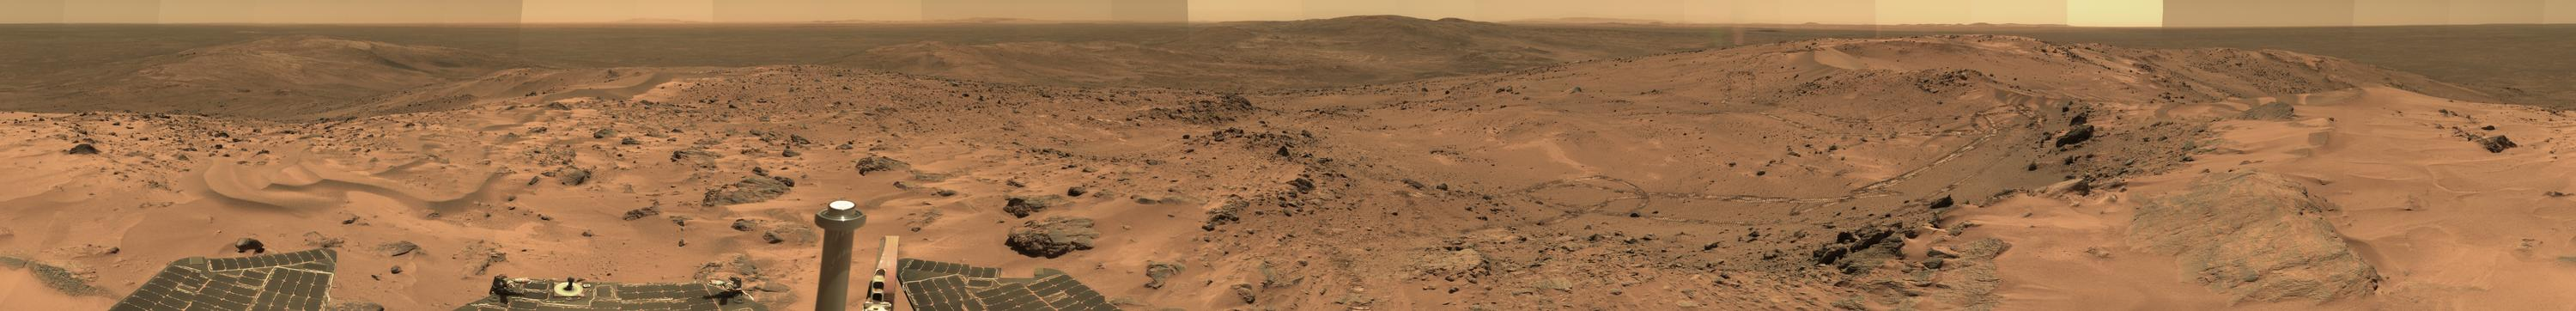 This approximate true-color panorama shows a broad, reddish-brown plateau covered with sand ripples and sprinkled with black rocks. On the lower left, the leading edge of the rover's solar panels and the silvery, metallic column of the UHF antenna are visible. In the distance are more hills, the flat floor of Gusev Crater, and a largely flat horizon bounded by a salmon-colored sky. Barely visible in th e middle horizon are the sloping peaks that make up part of the rim of Gusev Crater. Parts of the sky are darker and other parts are brighter as a result of changing amounts of dust in the atmosphere when the various images in the panoroma were taken.